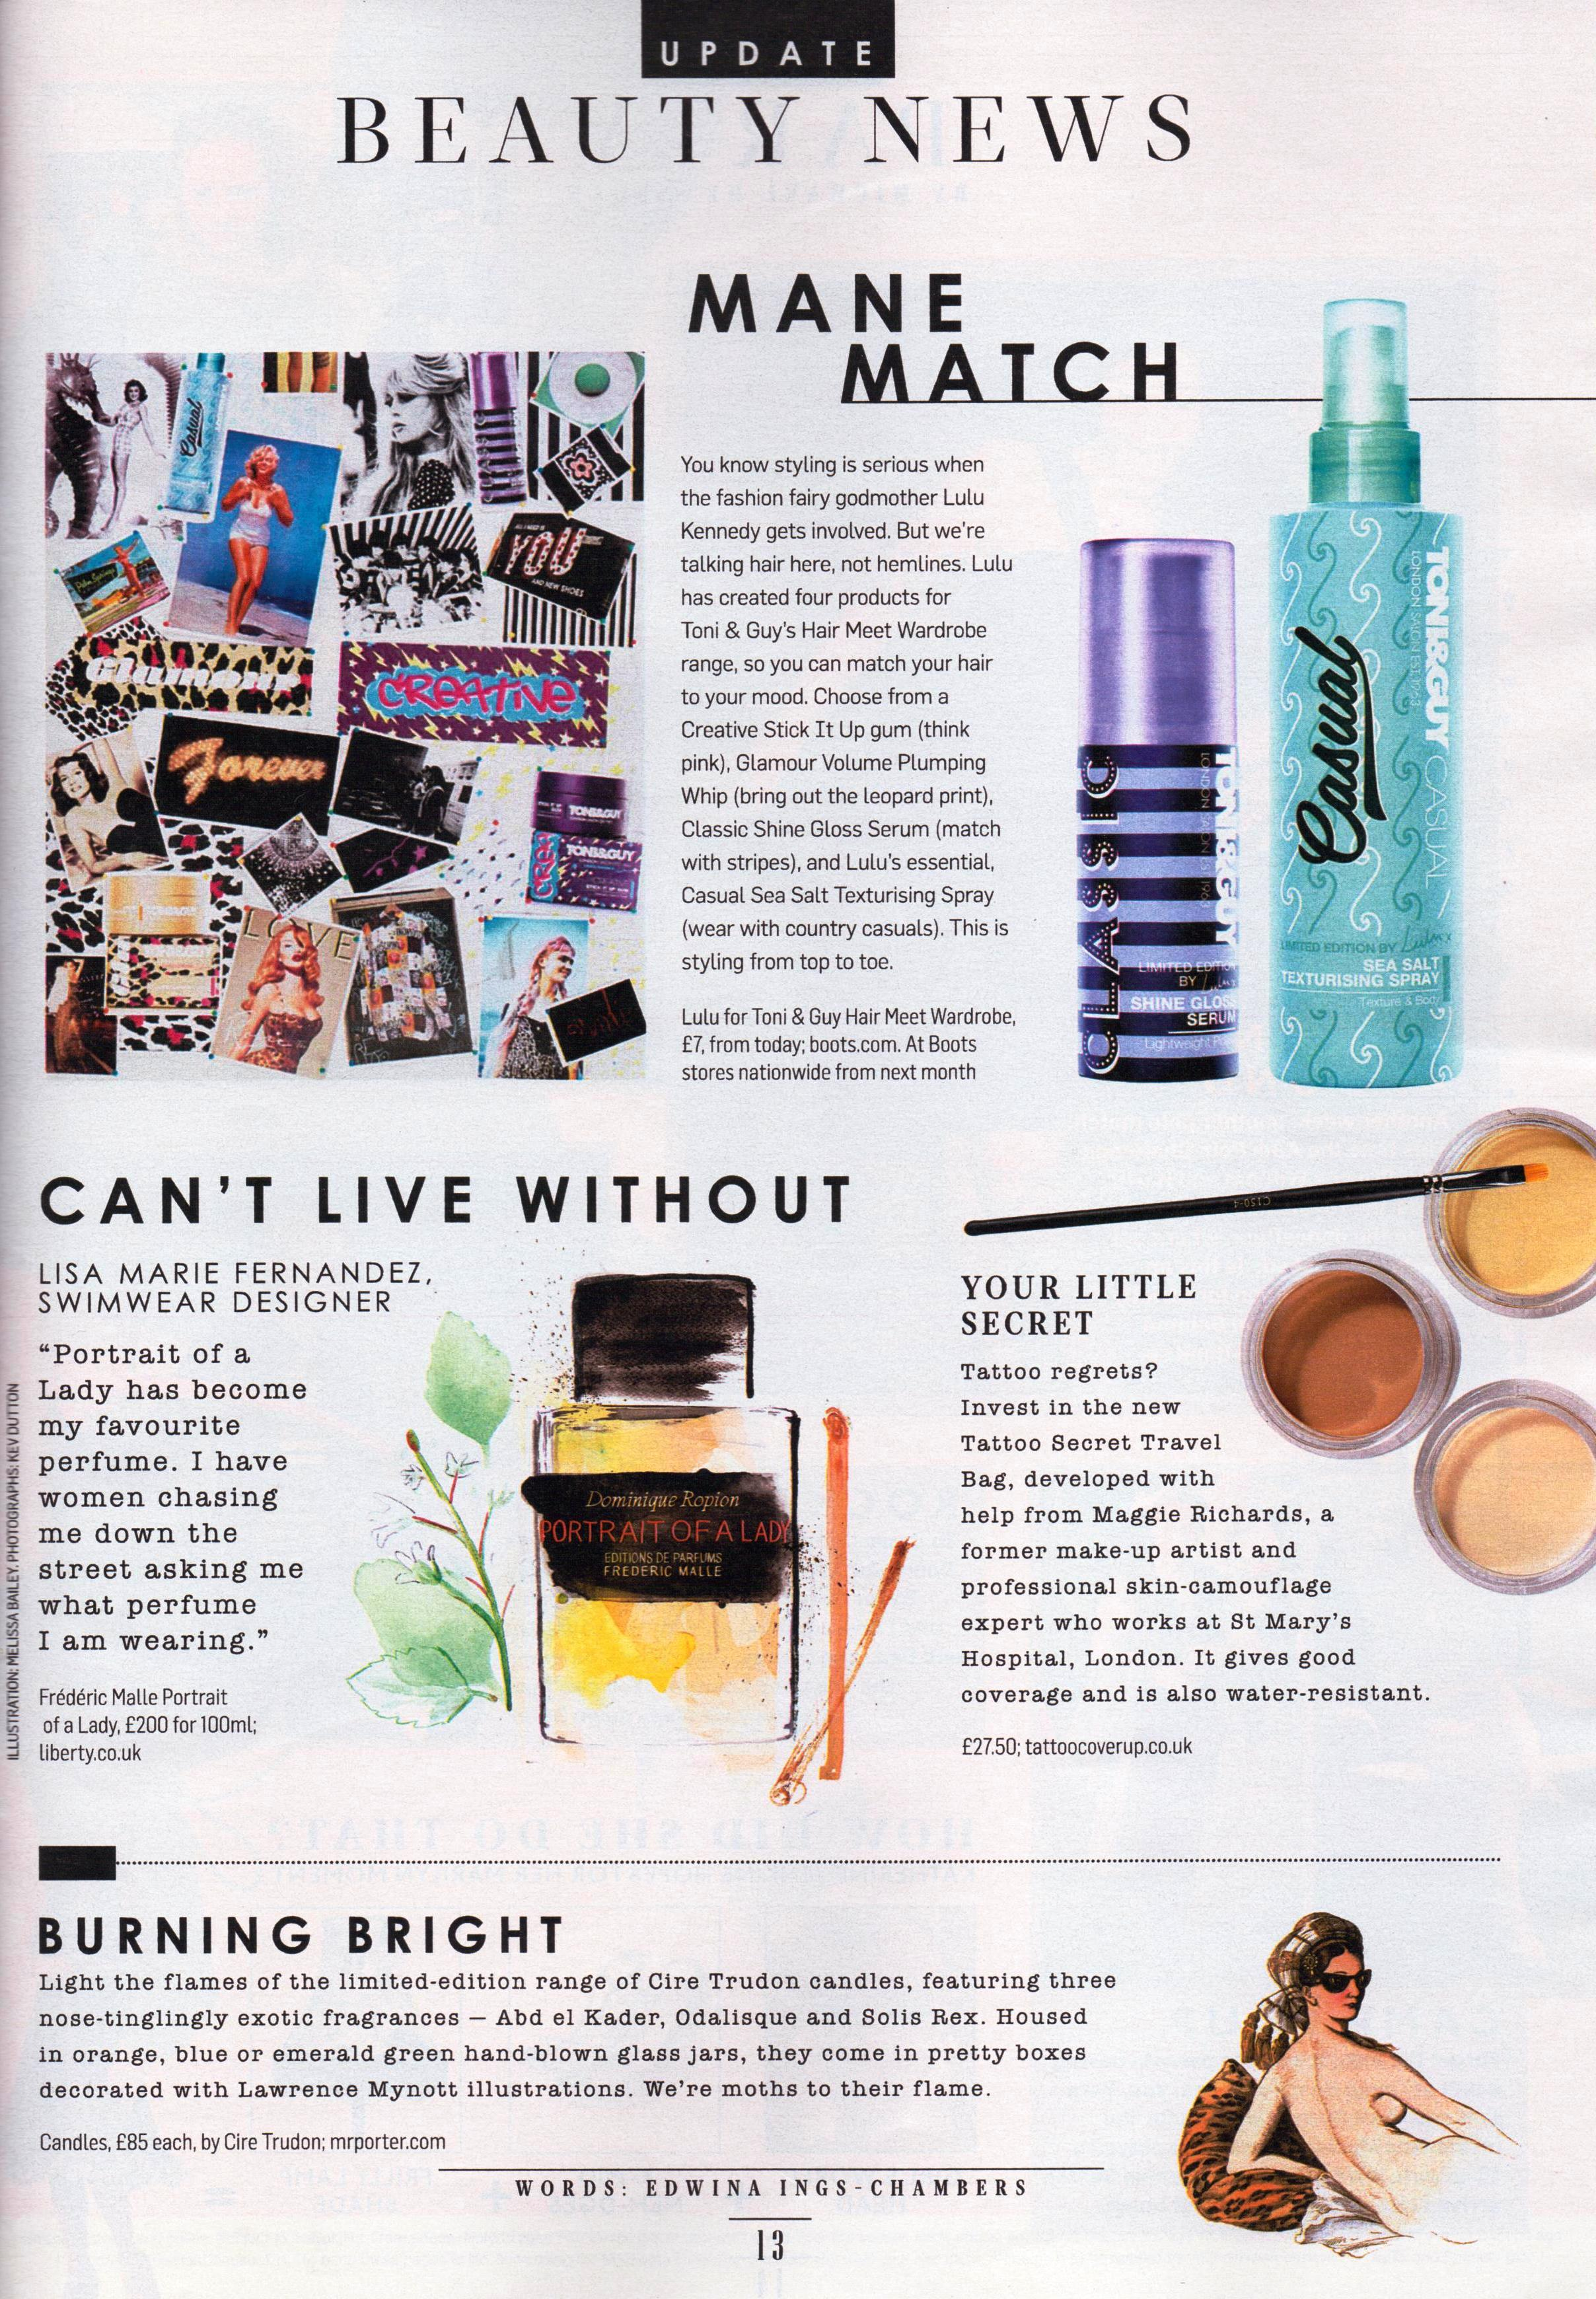 Tattoo Secret Review Sunday Times Style 18th Aug 2013